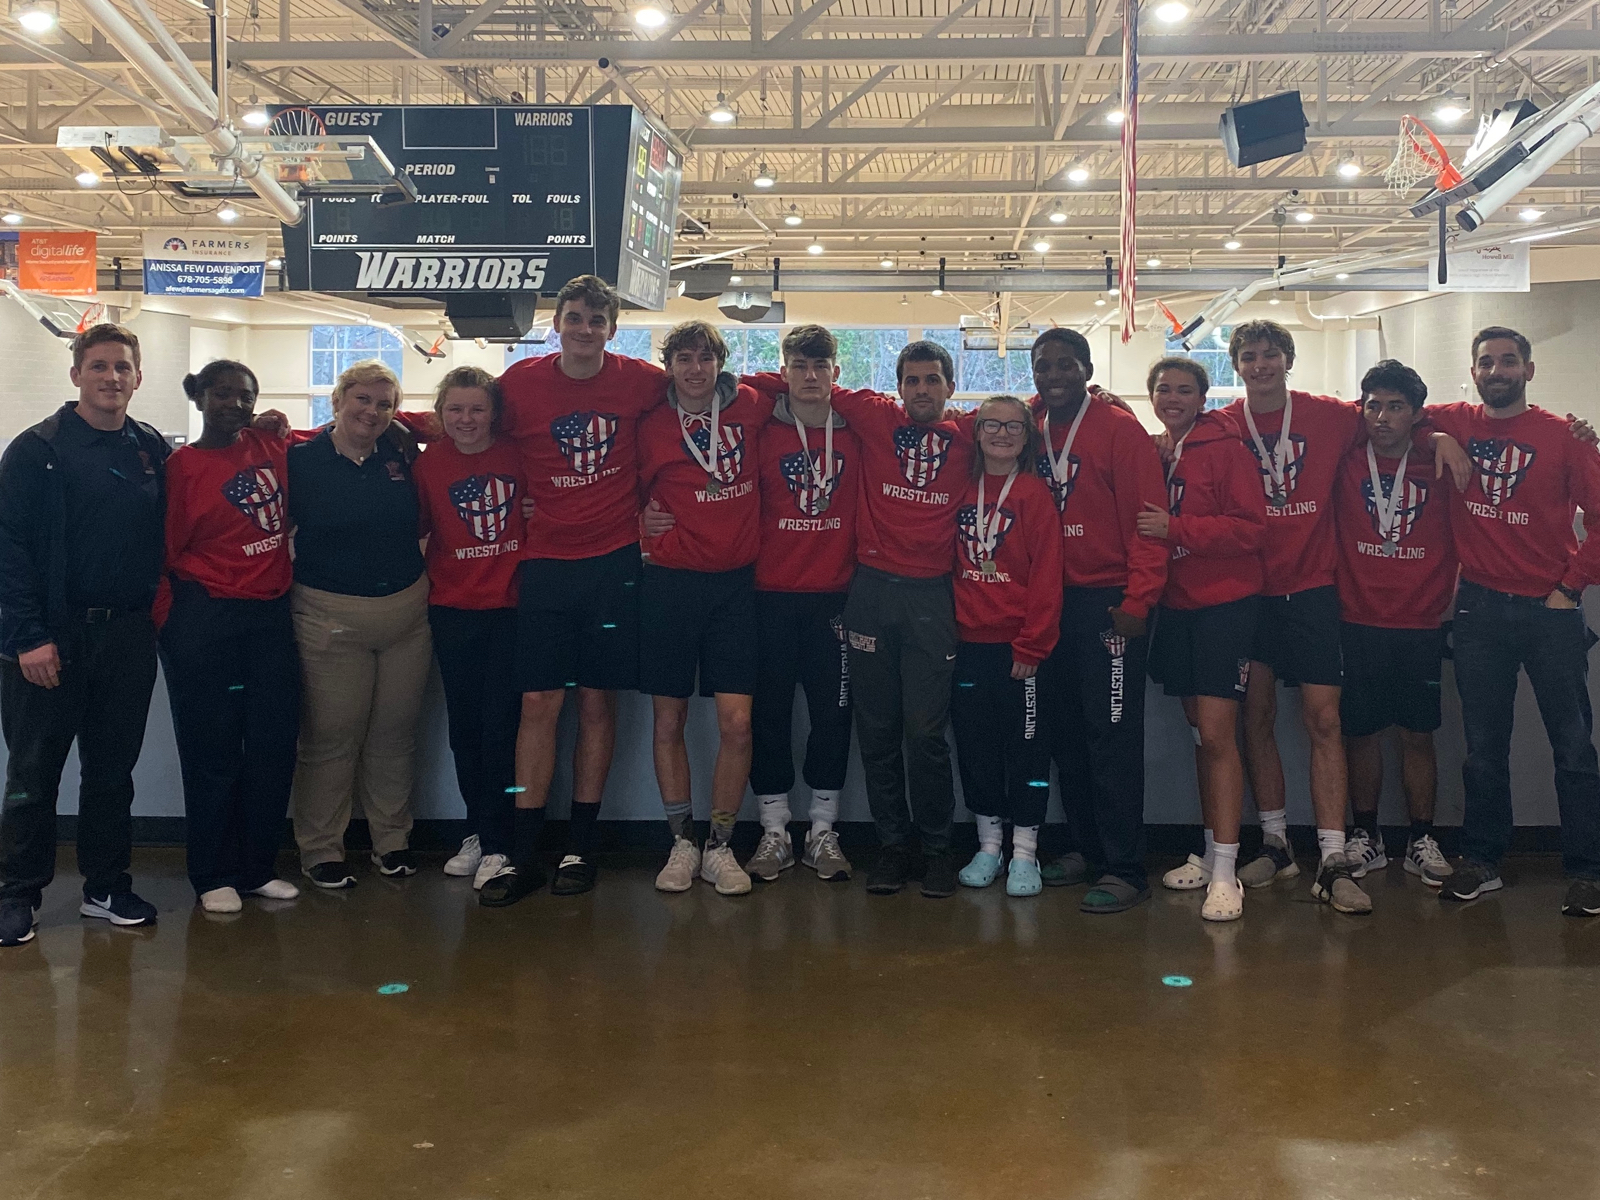 4 Patriots earn individual Titles, 6 others place at Warrior Invitational